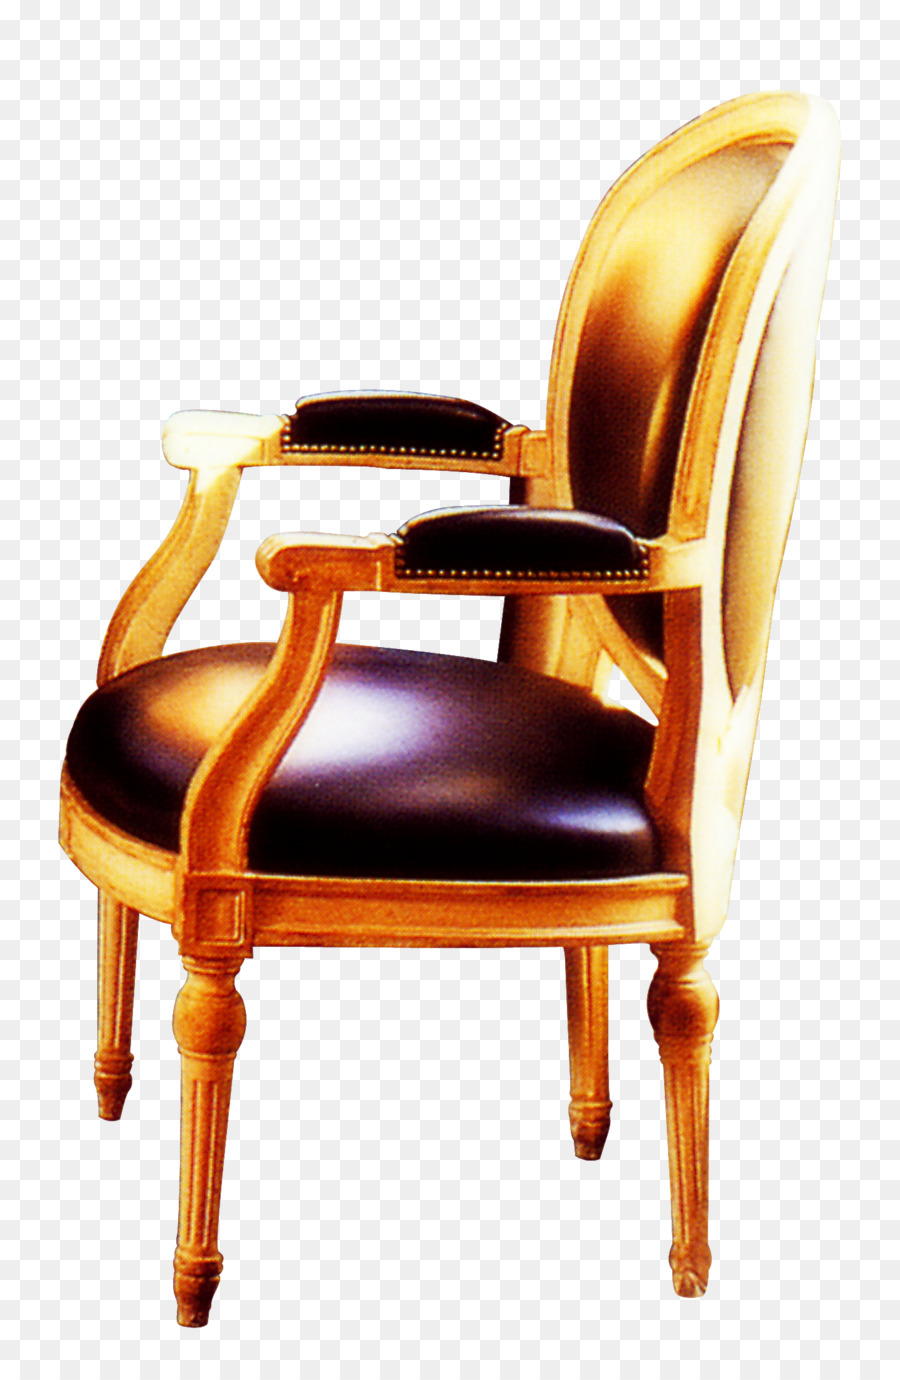 Chair Seat Couch   Luxury Golden Wooden Seat